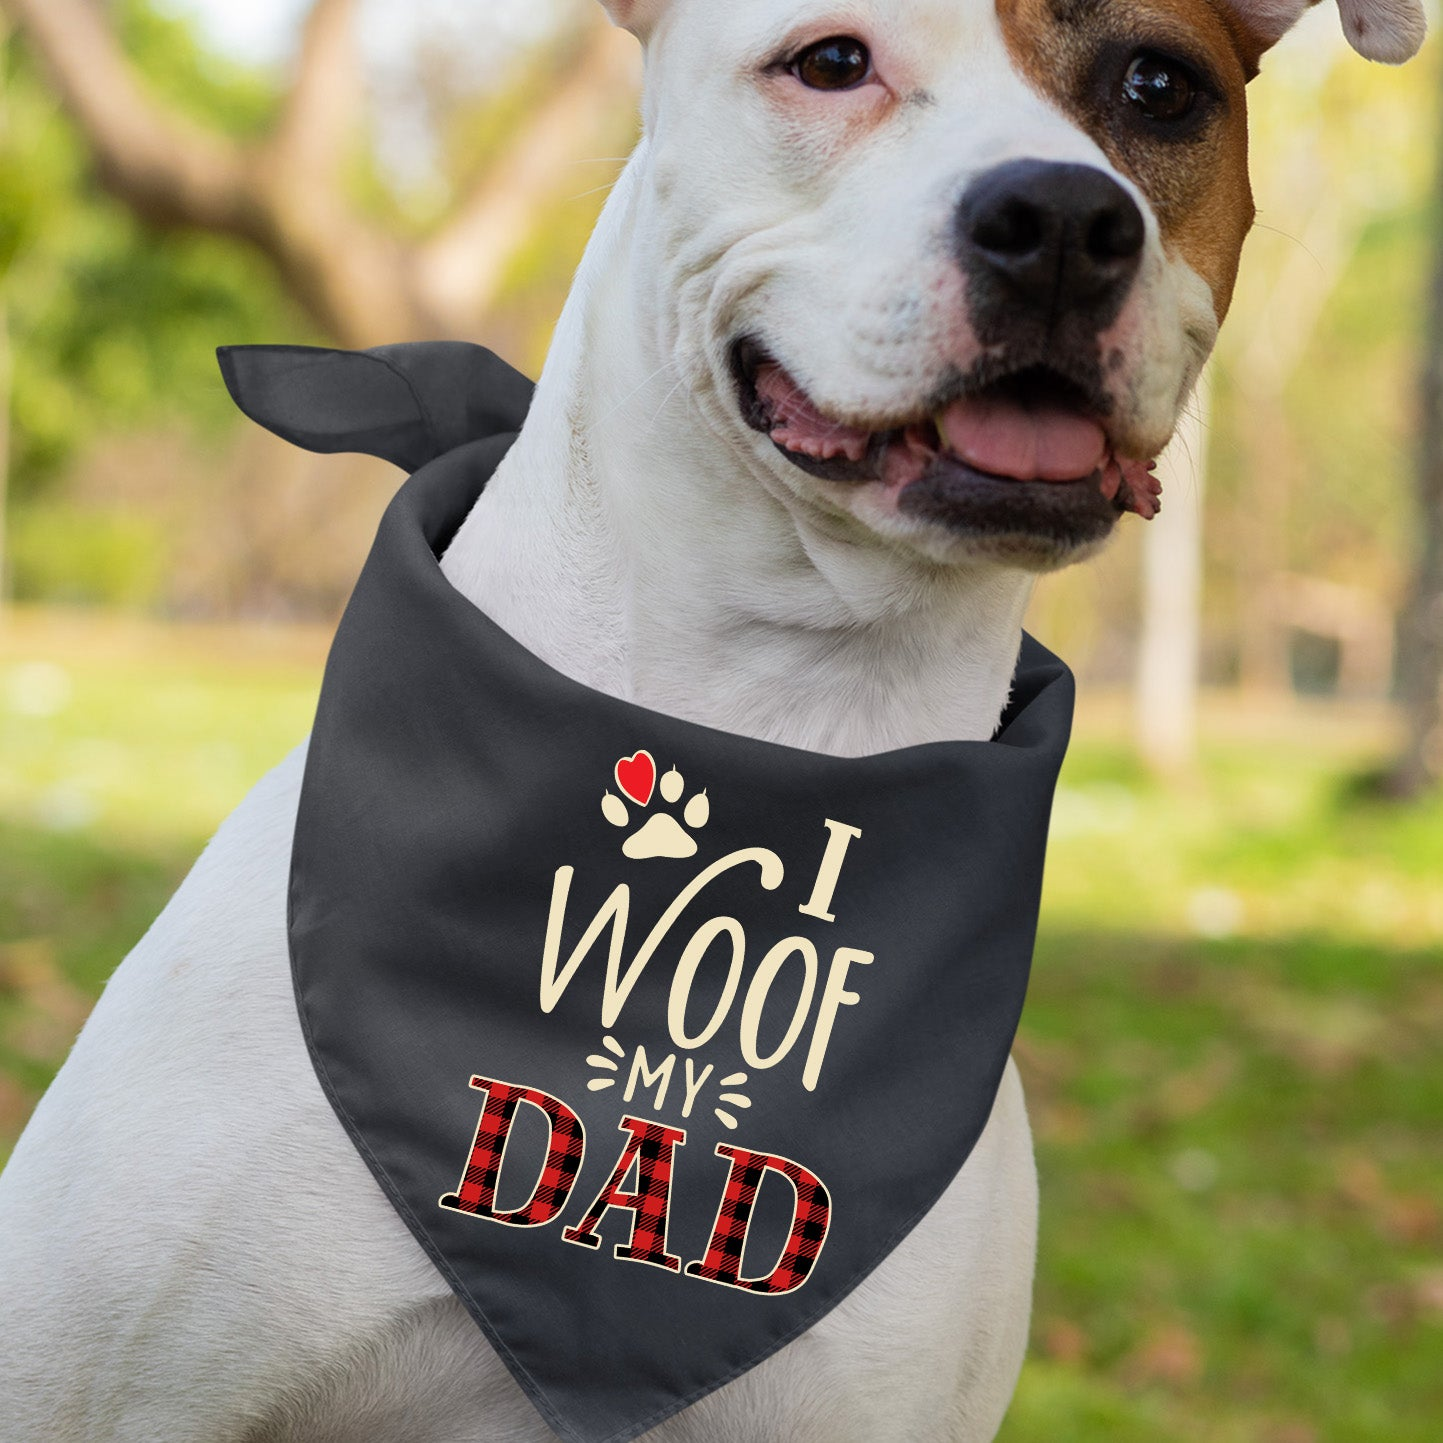 I Woof My Dad - Dog Bandana